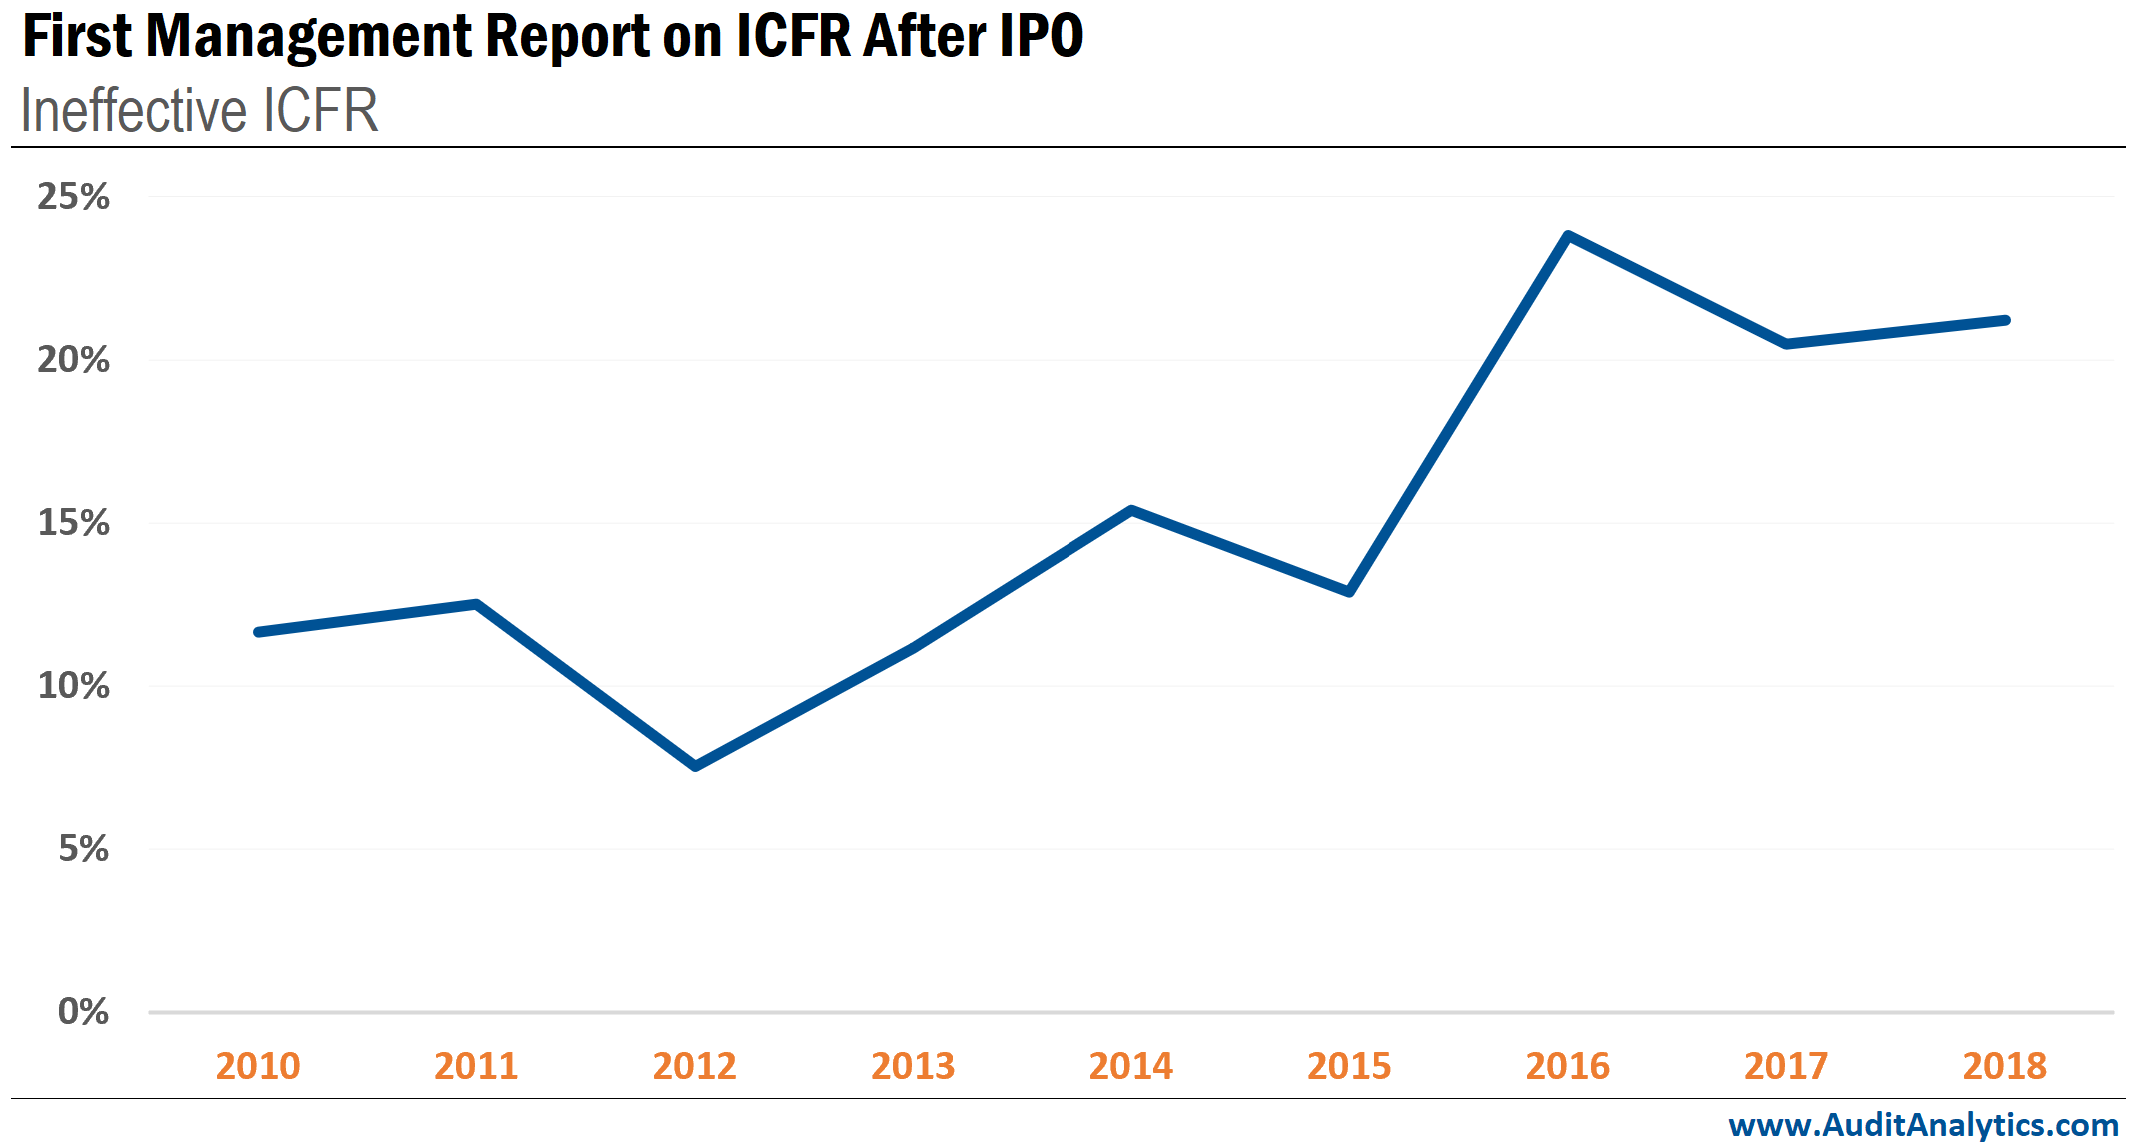 Weaknesses in ICFR after IPO